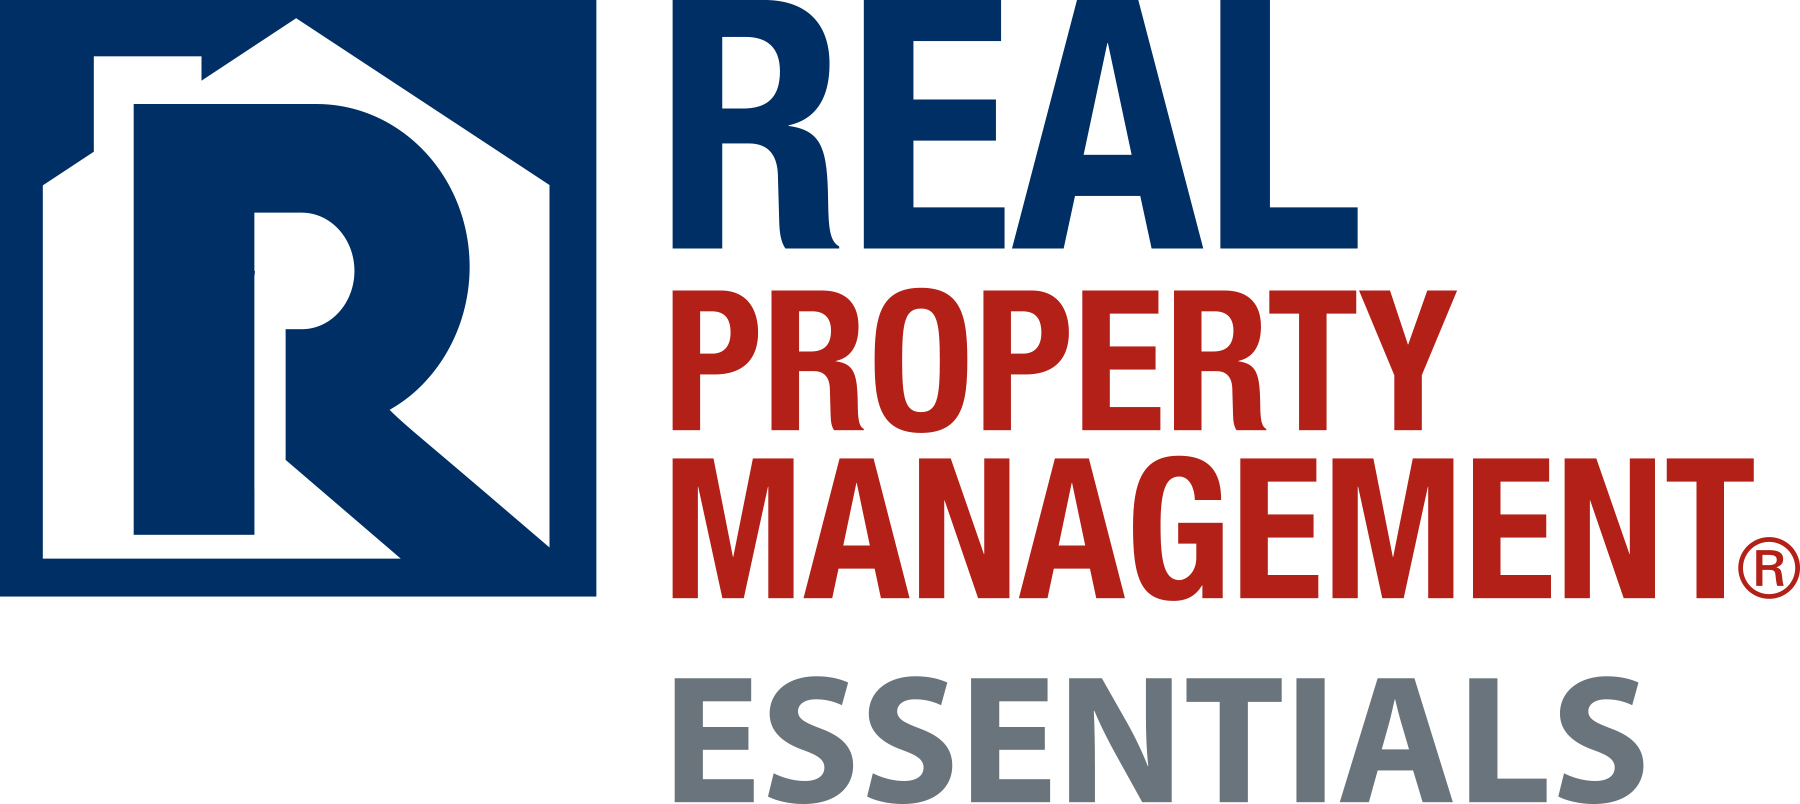 >Real Property Management Essentials